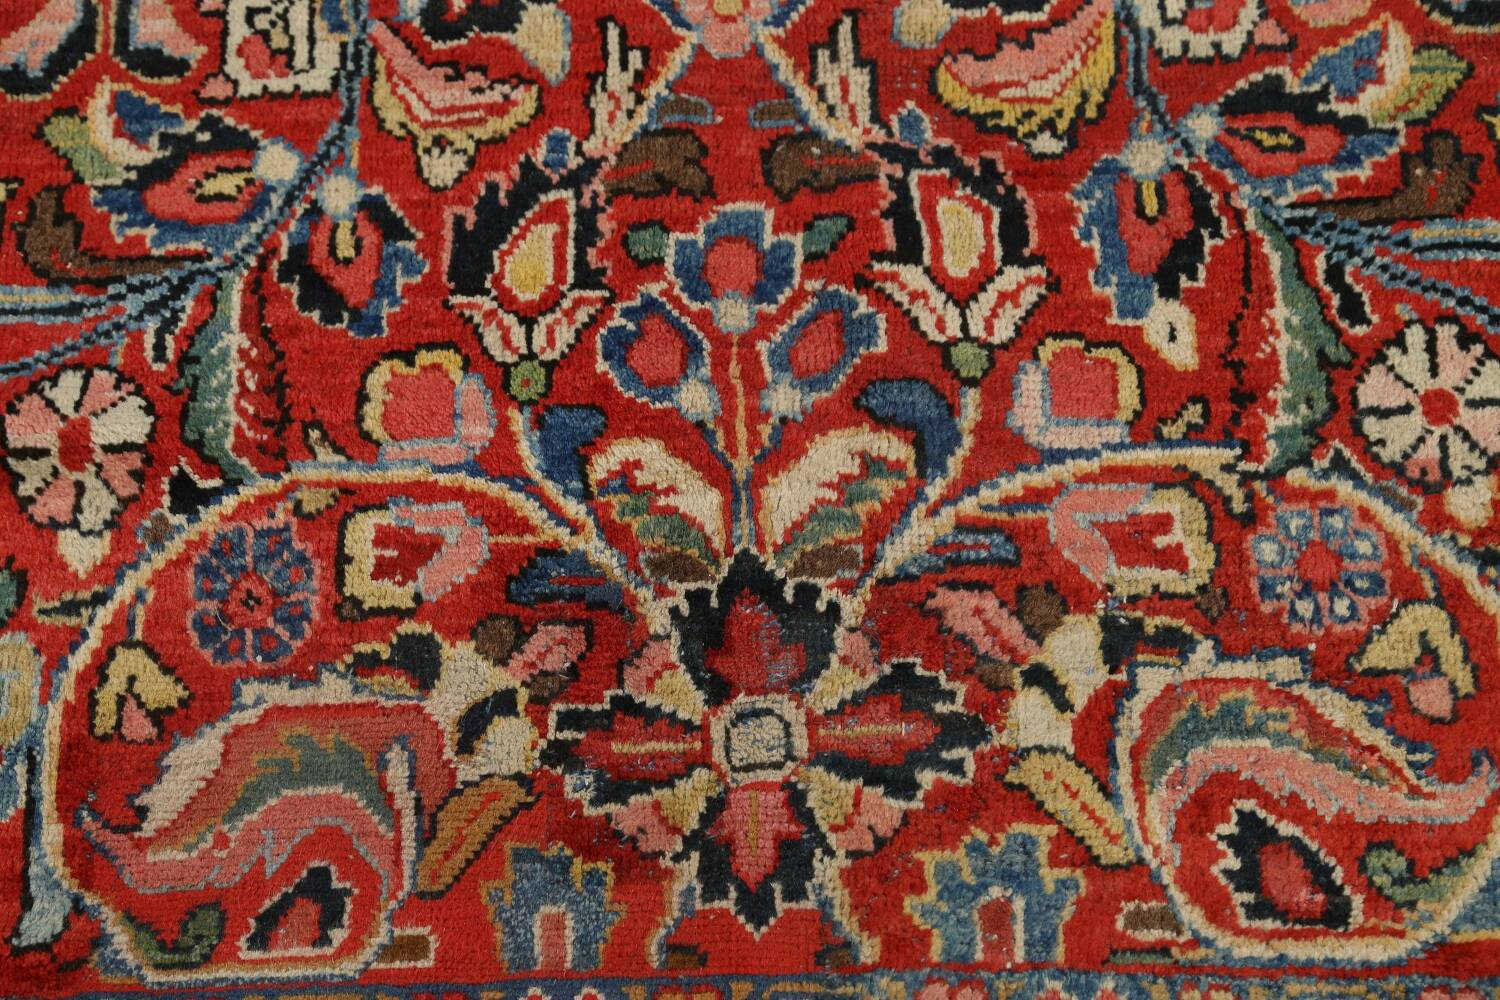 Antique Vegetable Dye Sultanabad Persian Area Rug 10x14 image 10